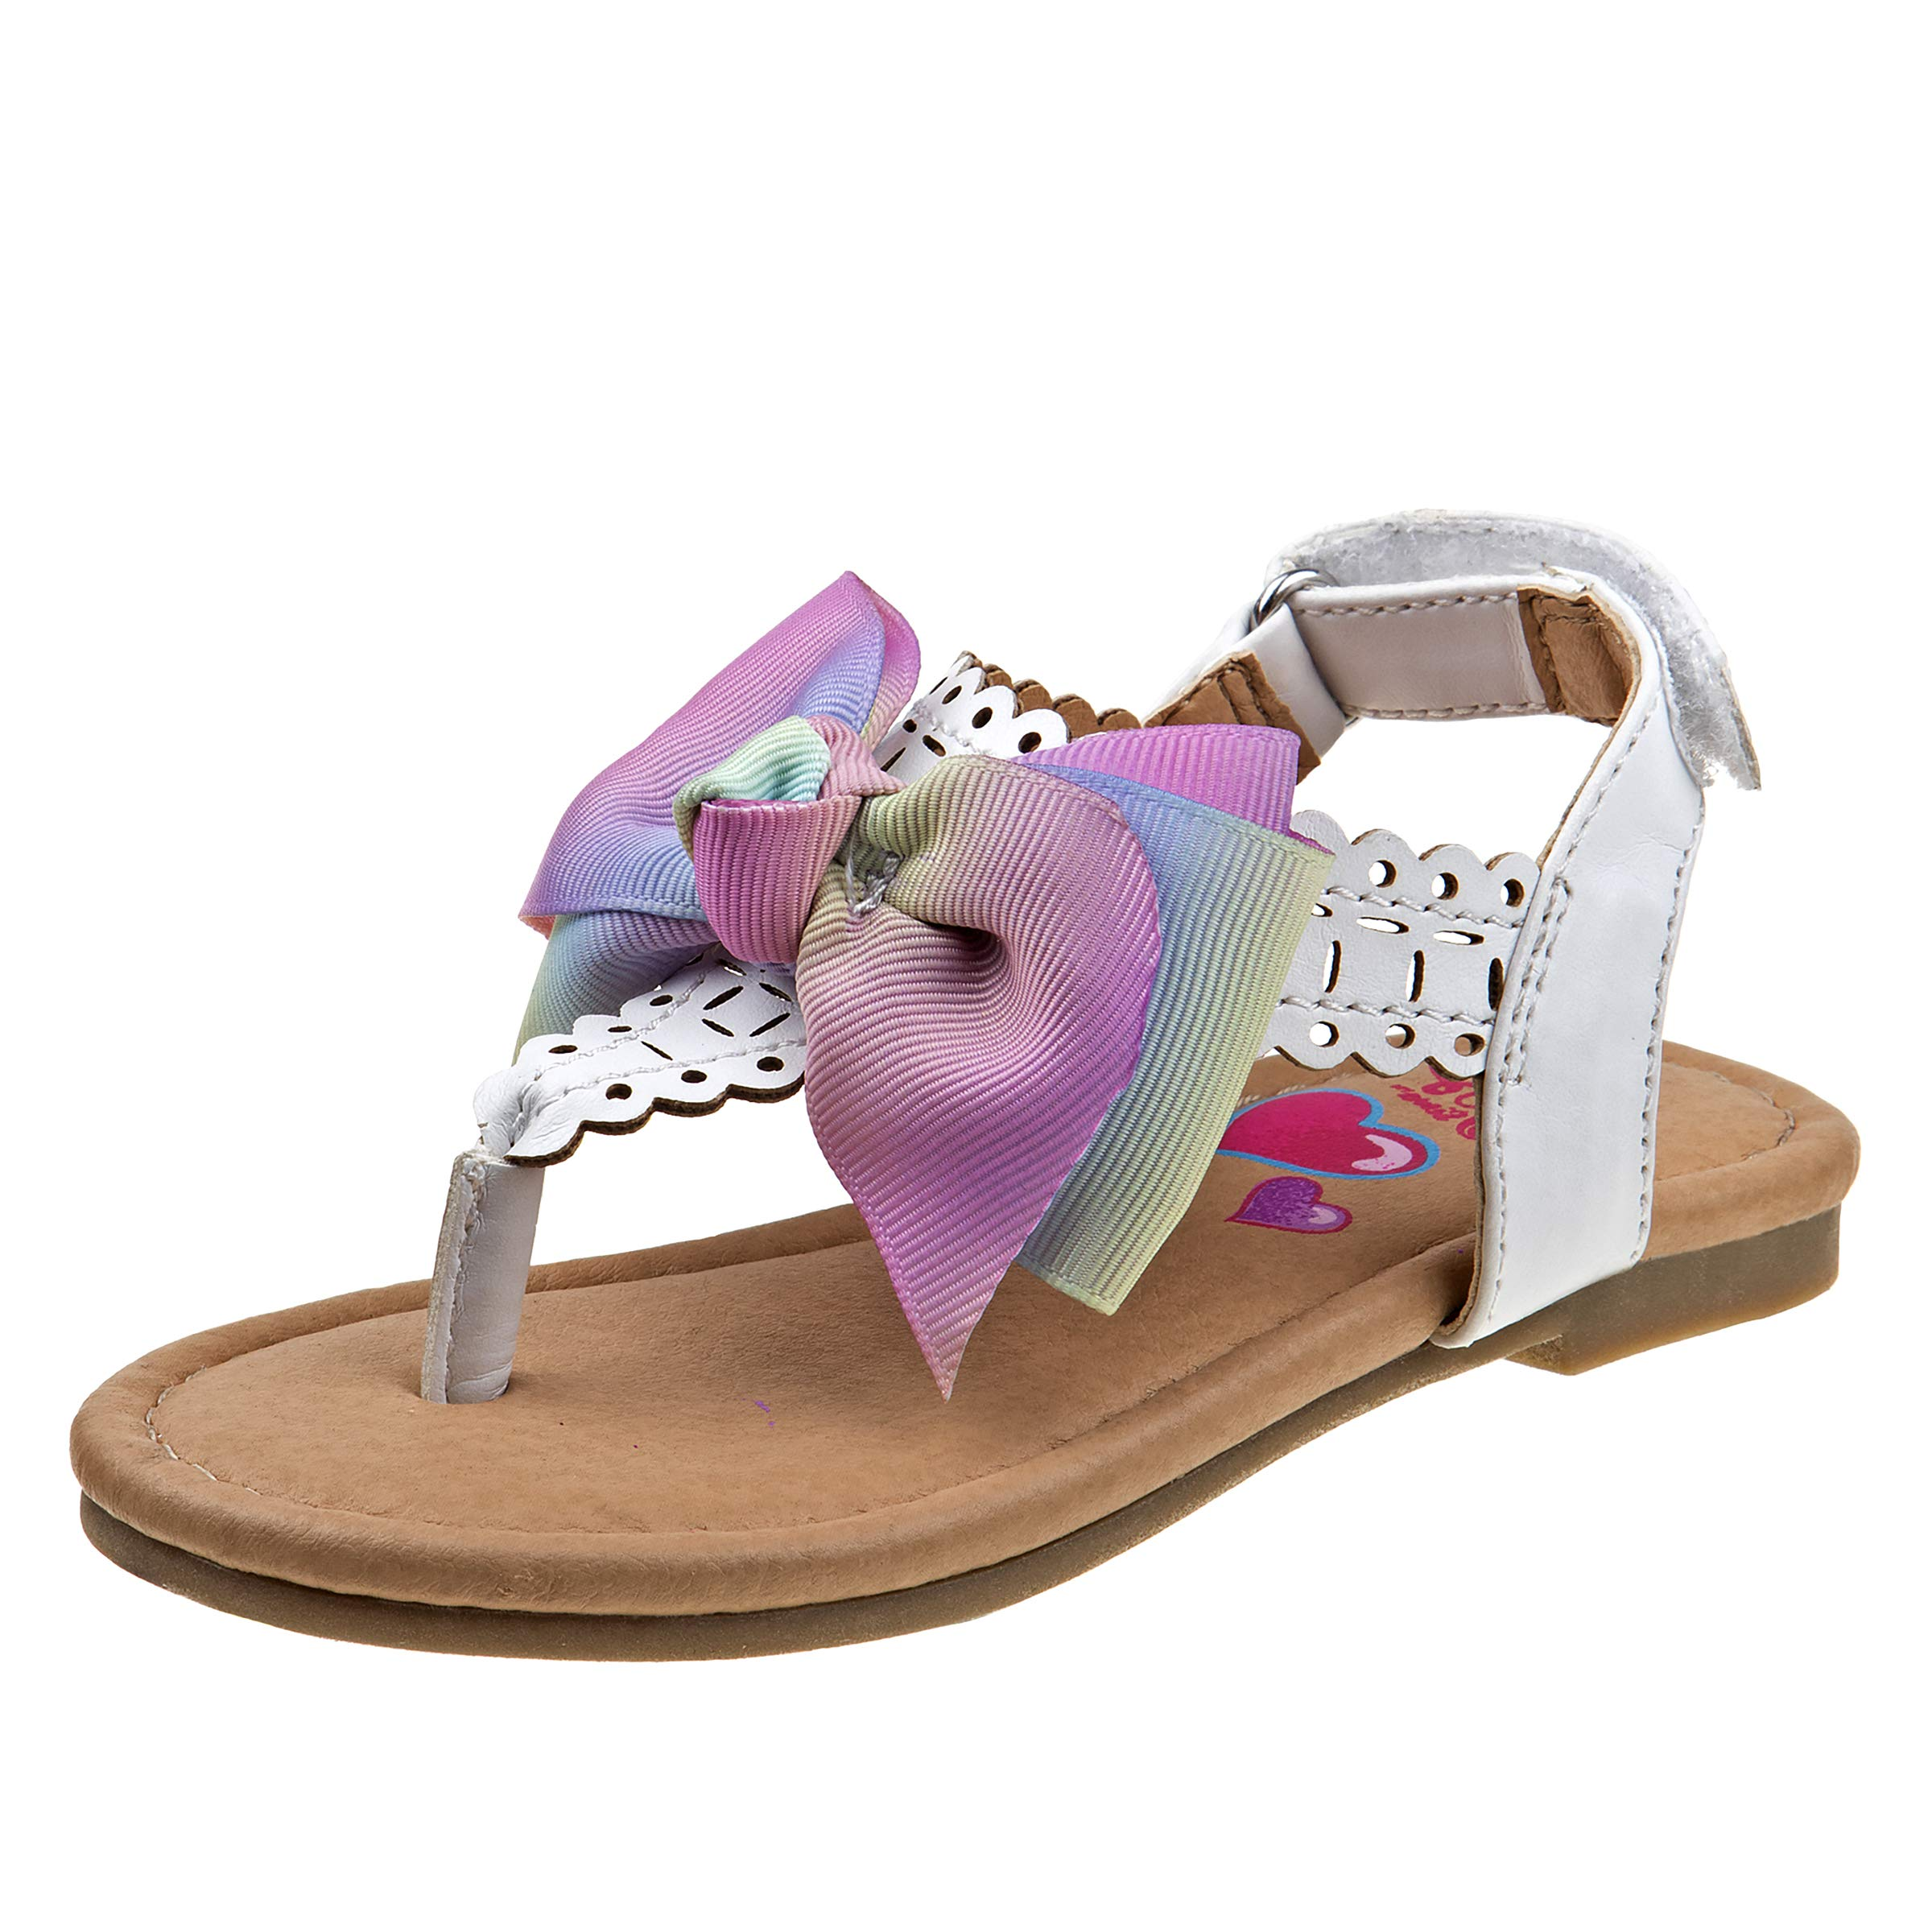 JoJo Siwa Girls' Thong Sandals with Signature Bow and Easy Heel Strap (Toddler/Little Kid/Big Kid), White with Bow, Size 9 M US Toddler'